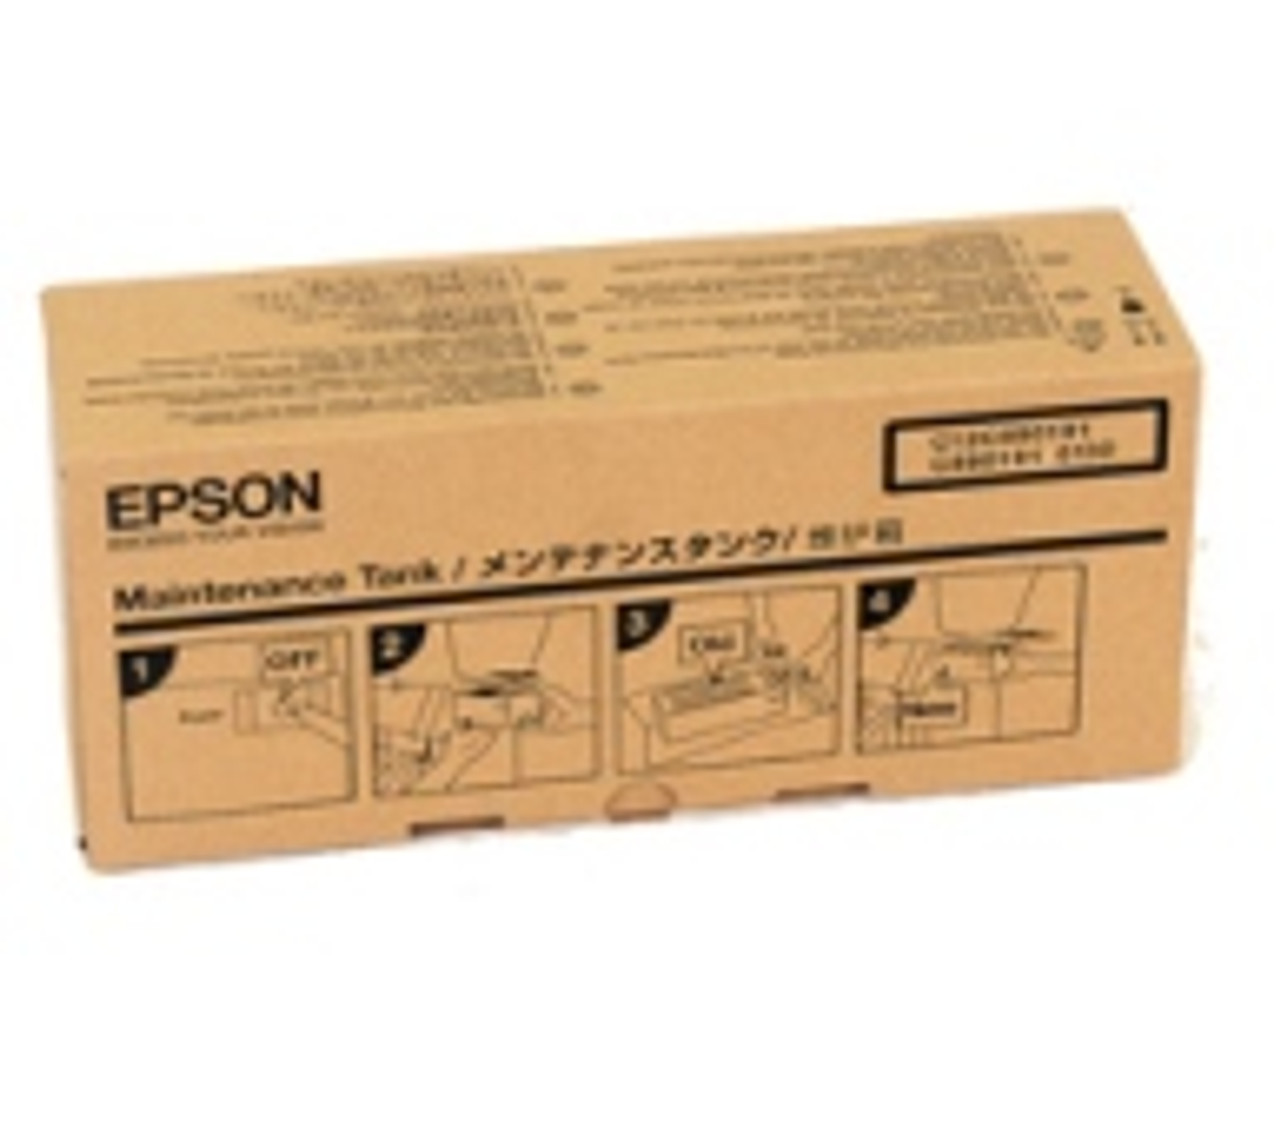 Epson Replacement Ink Maintenance Tank C12C890191